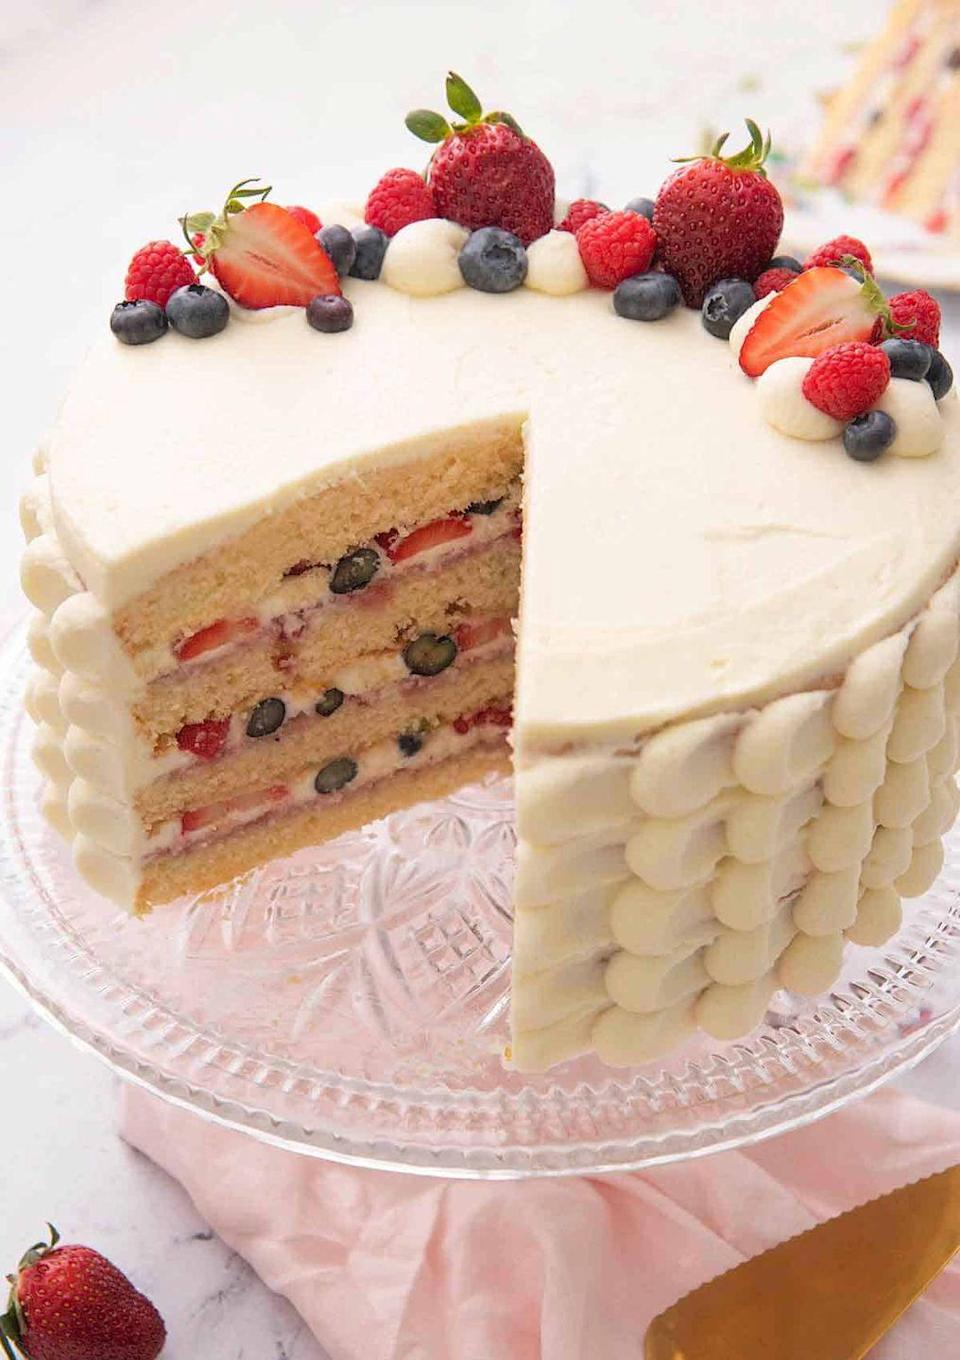 """<p>Try this layered cake to really wow your guests. It's made with fresh berries, Chantilly cream, and vanilla cake.</p><p><strong>Get the recipe at <a href=""""https://preppykitchen.com/chantilly-cake/"""" rel=""""nofollow noopener"""" target=""""_blank"""" data-ylk=""""slk:Preppy Kitchen"""" class=""""link rapid-noclick-resp"""">Preppy Kitchen</a>.</strong></p><p><strong><a class=""""link rapid-noclick-resp"""" href=""""https://go.redirectingat.com?id=74968X1596630&url=https%3A%2F%2Fwww.walmart.com%2Fsearch%2F%3Fquery%3Dcake%2Bpan&sref=https%3A%2F%2Fwww.thepioneerwoman.com%2Ffood-cooking%2Fmeals-menus%2Fg32109085%2Ffourth-of-july-desserts%2F"""" rel=""""nofollow noopener"""" target=""""_blank"""" data-ylk=""""slk:SHOP CAKE PANS"""">SHOP CAKE PANS</a><br></strong></p>"""